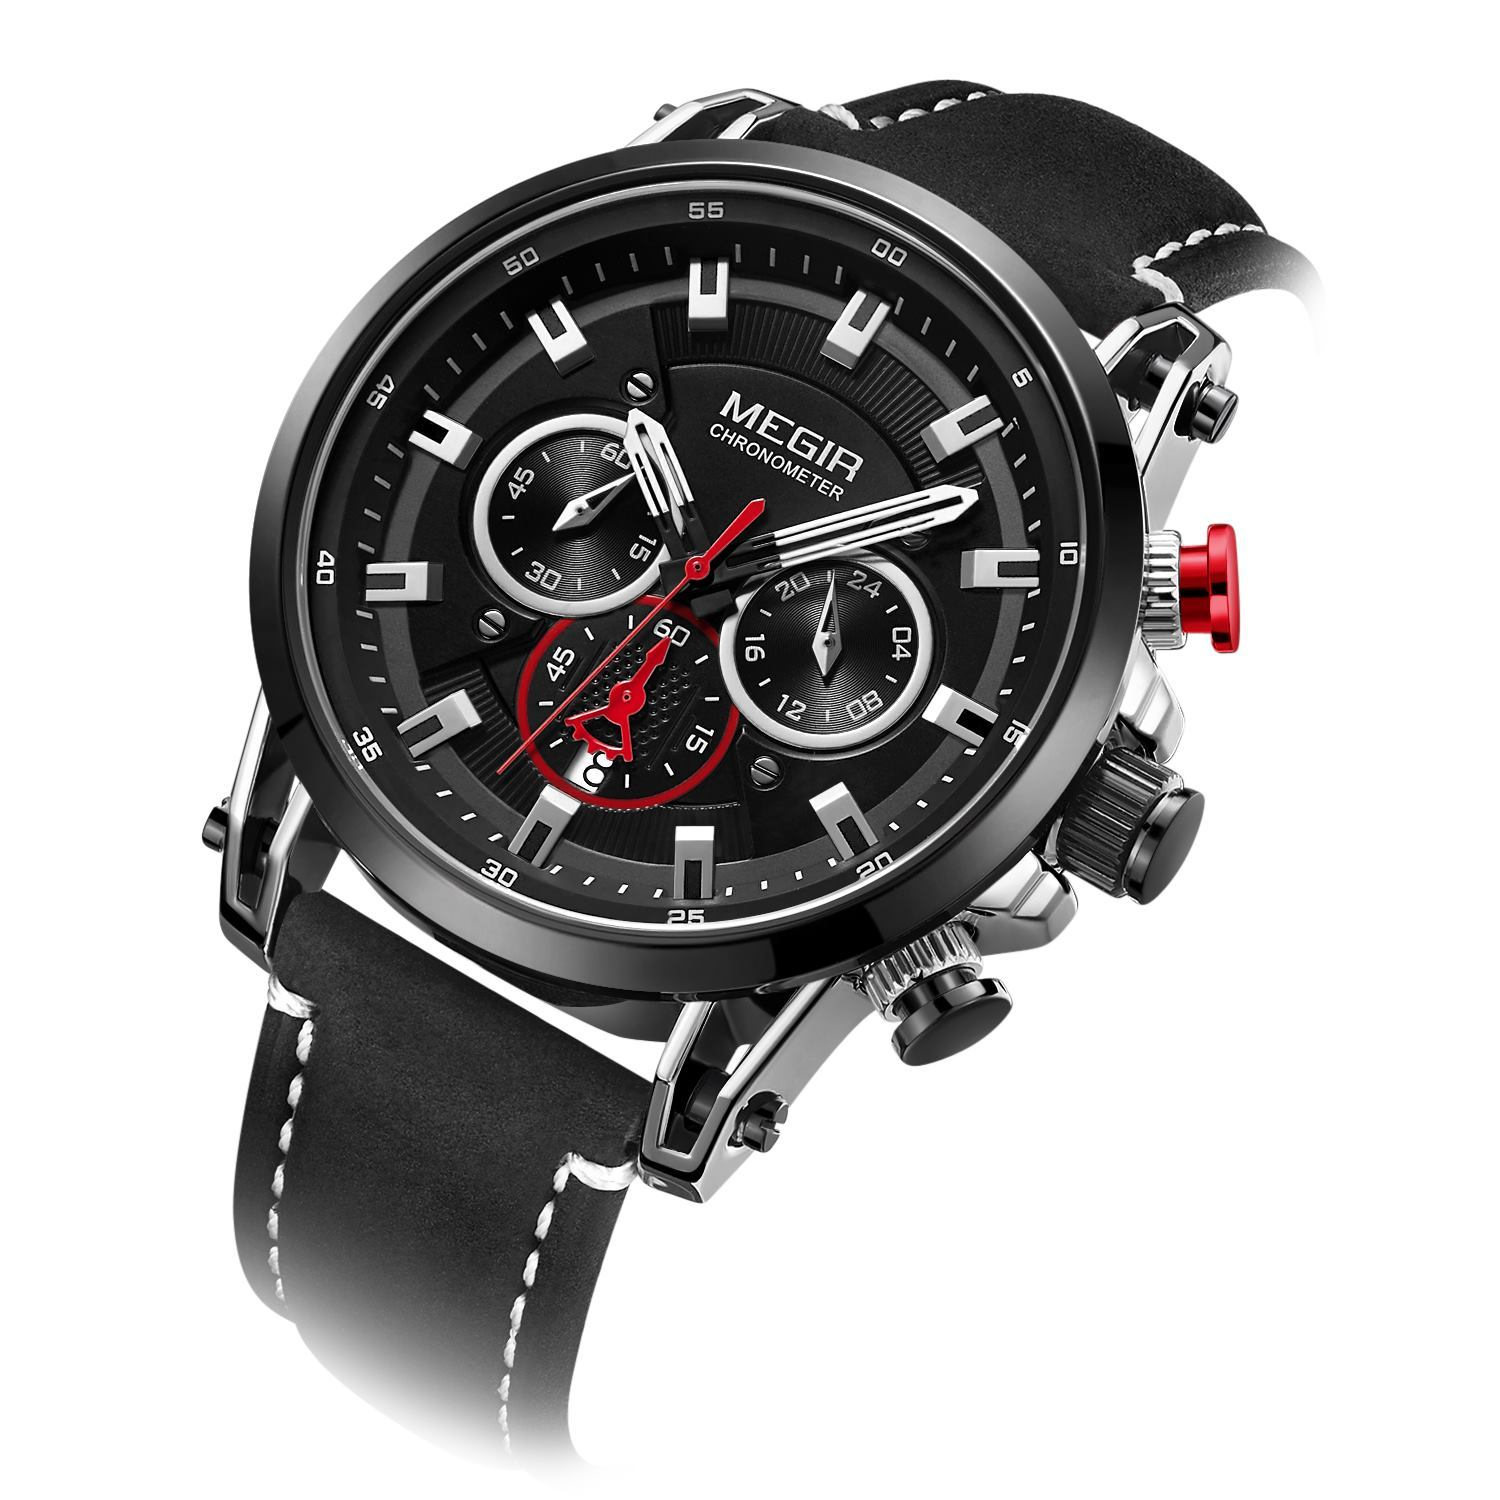 CHRONOGRAPH ML2085GS-BK-1